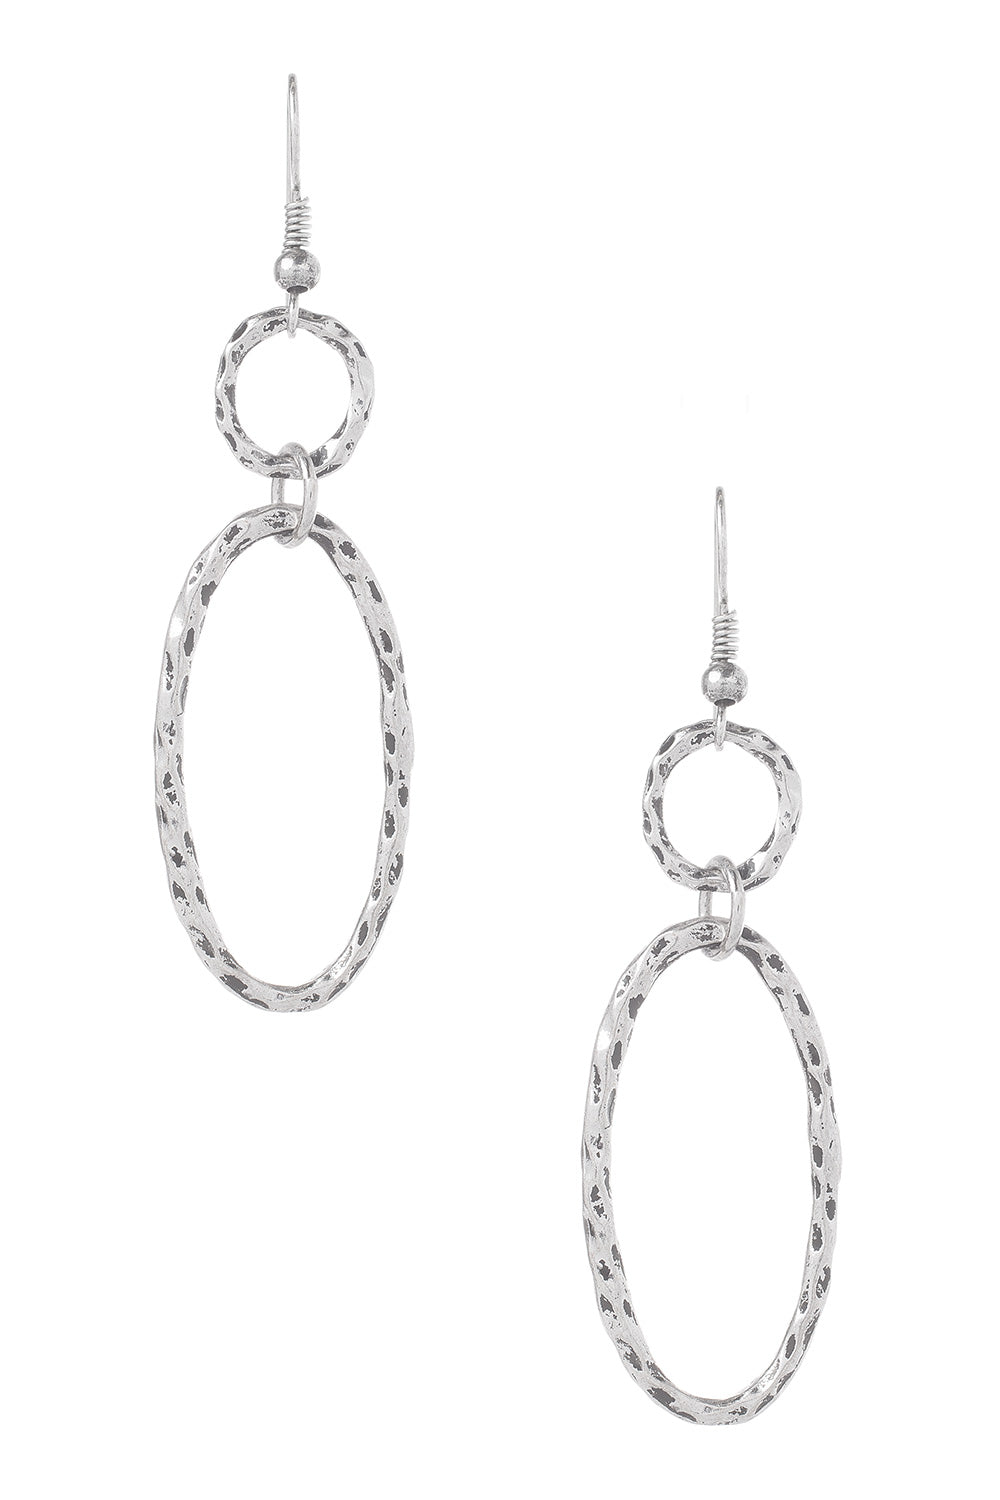 Type 2 Doubled Oval Earrings